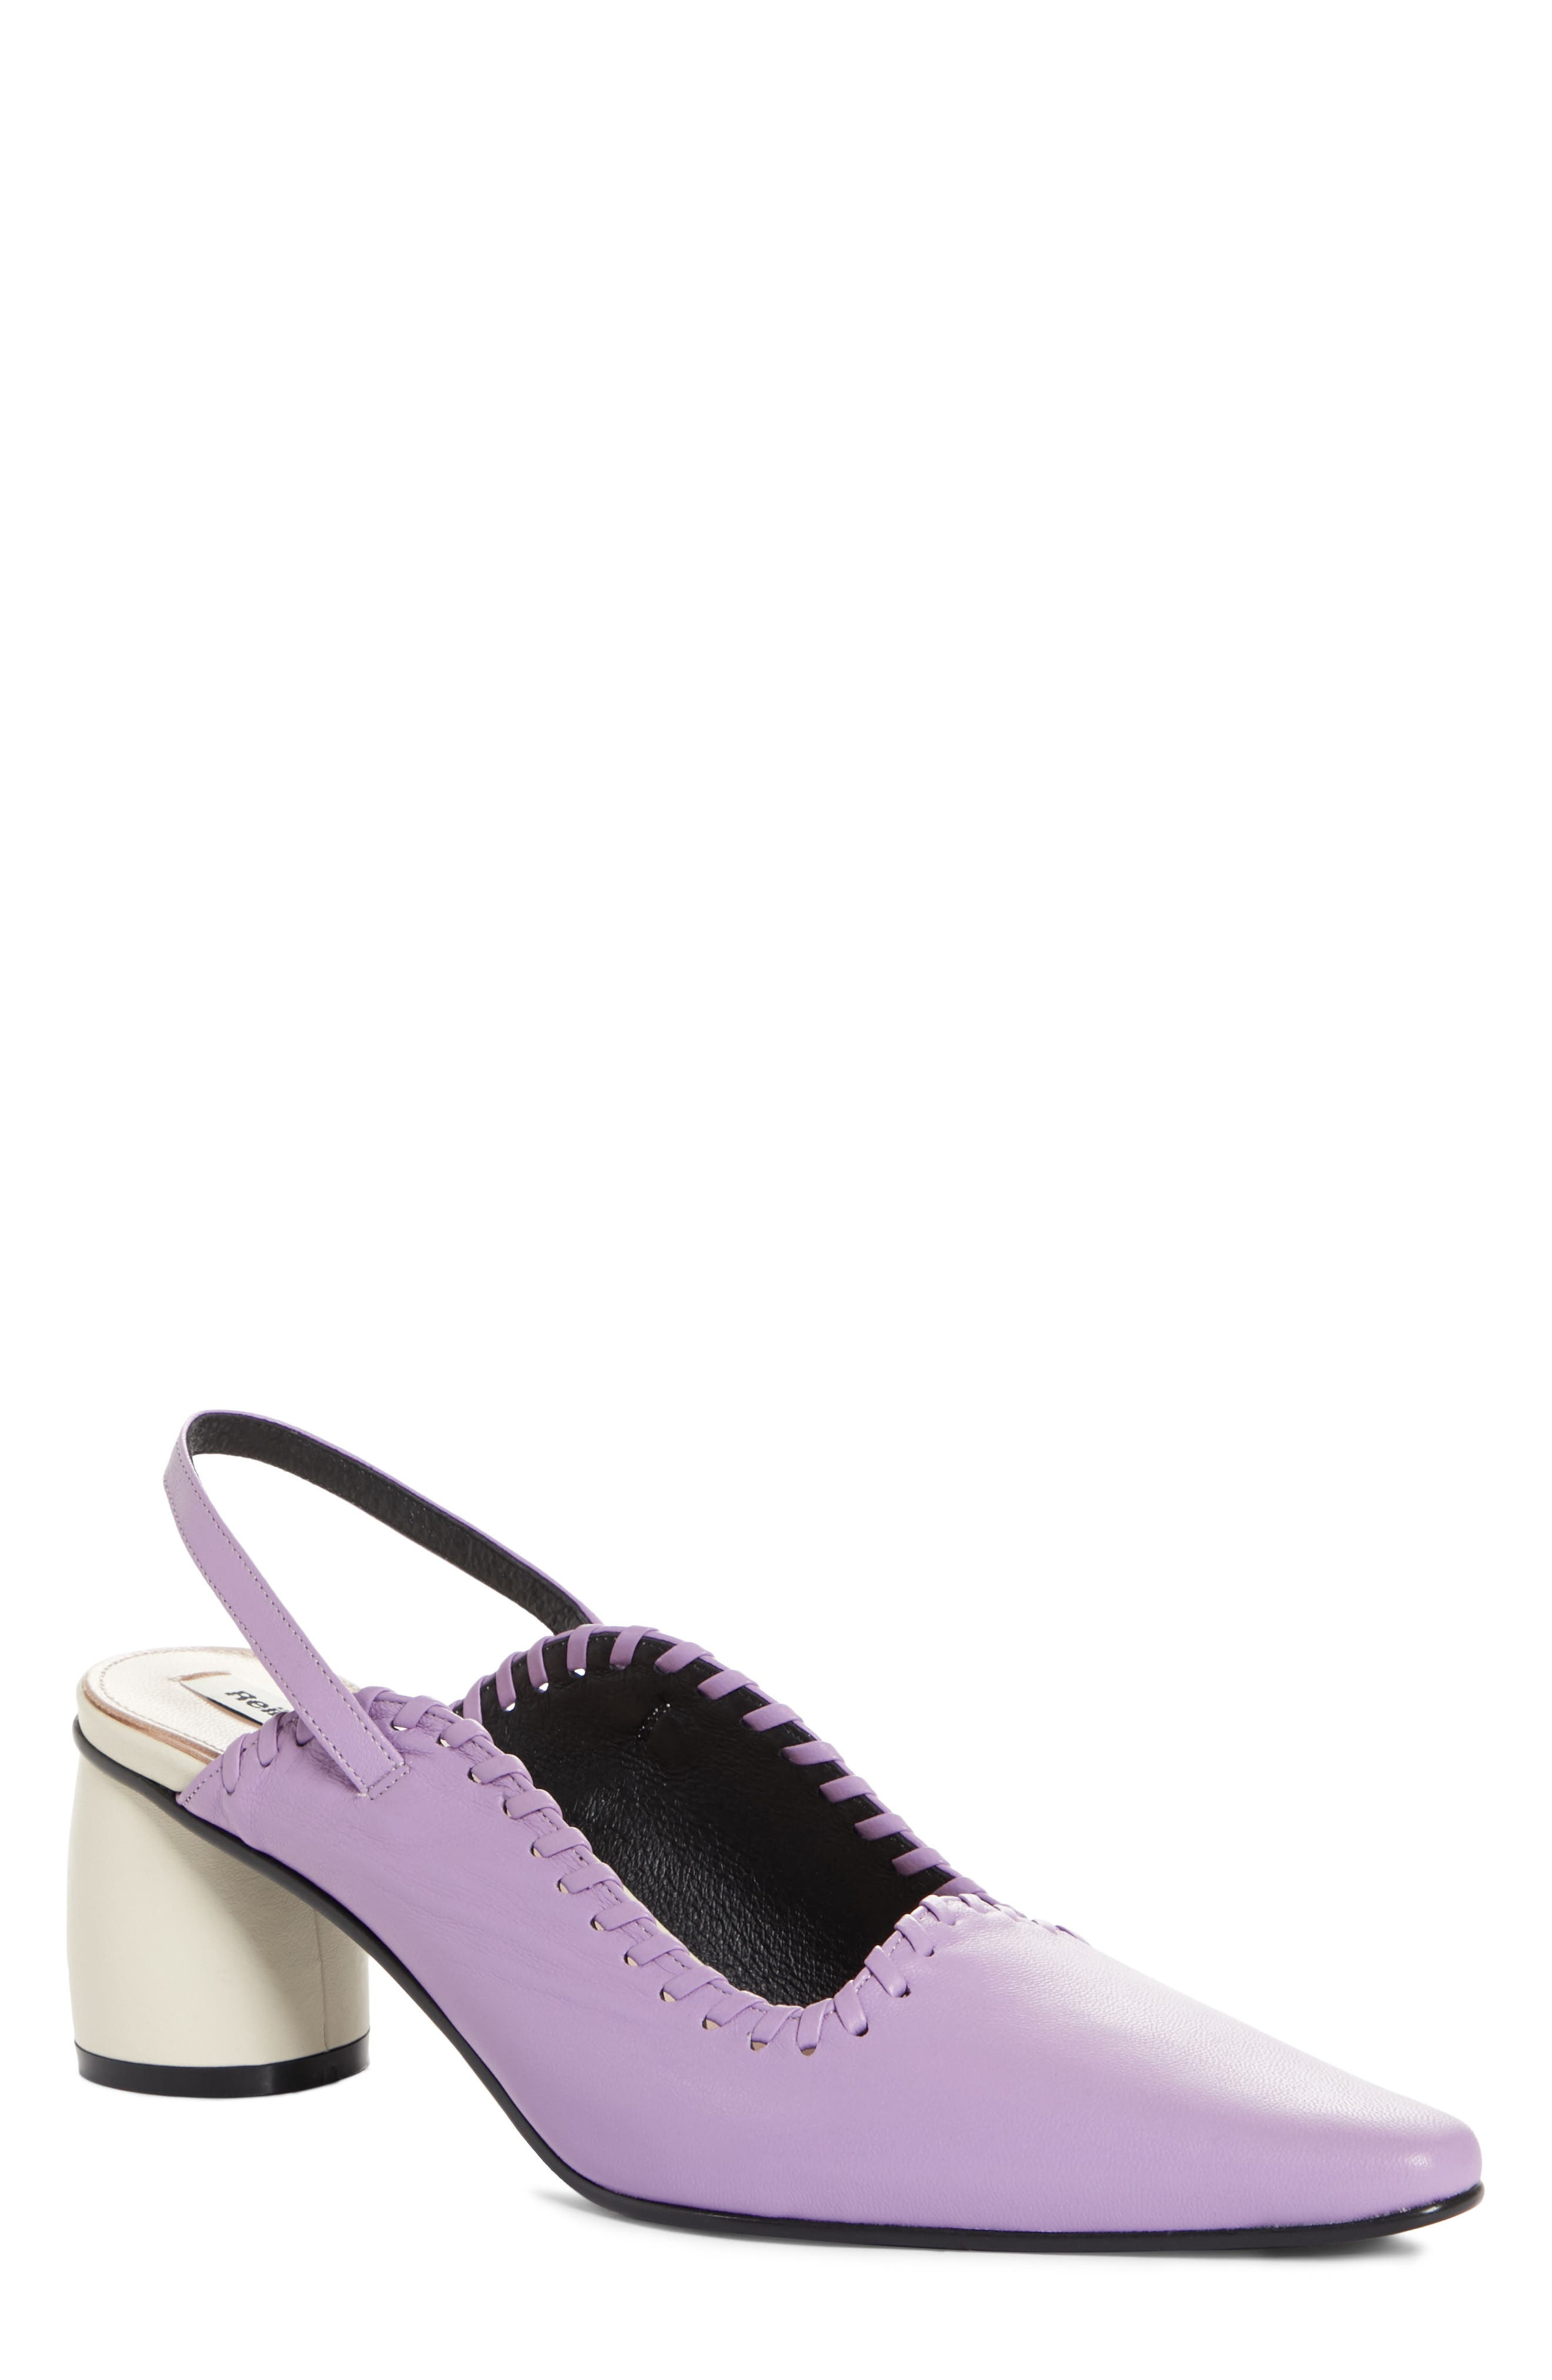 Curved Middle Slingback Pump,                             Main thumbnail 1, color,                             PURPLE IVORY